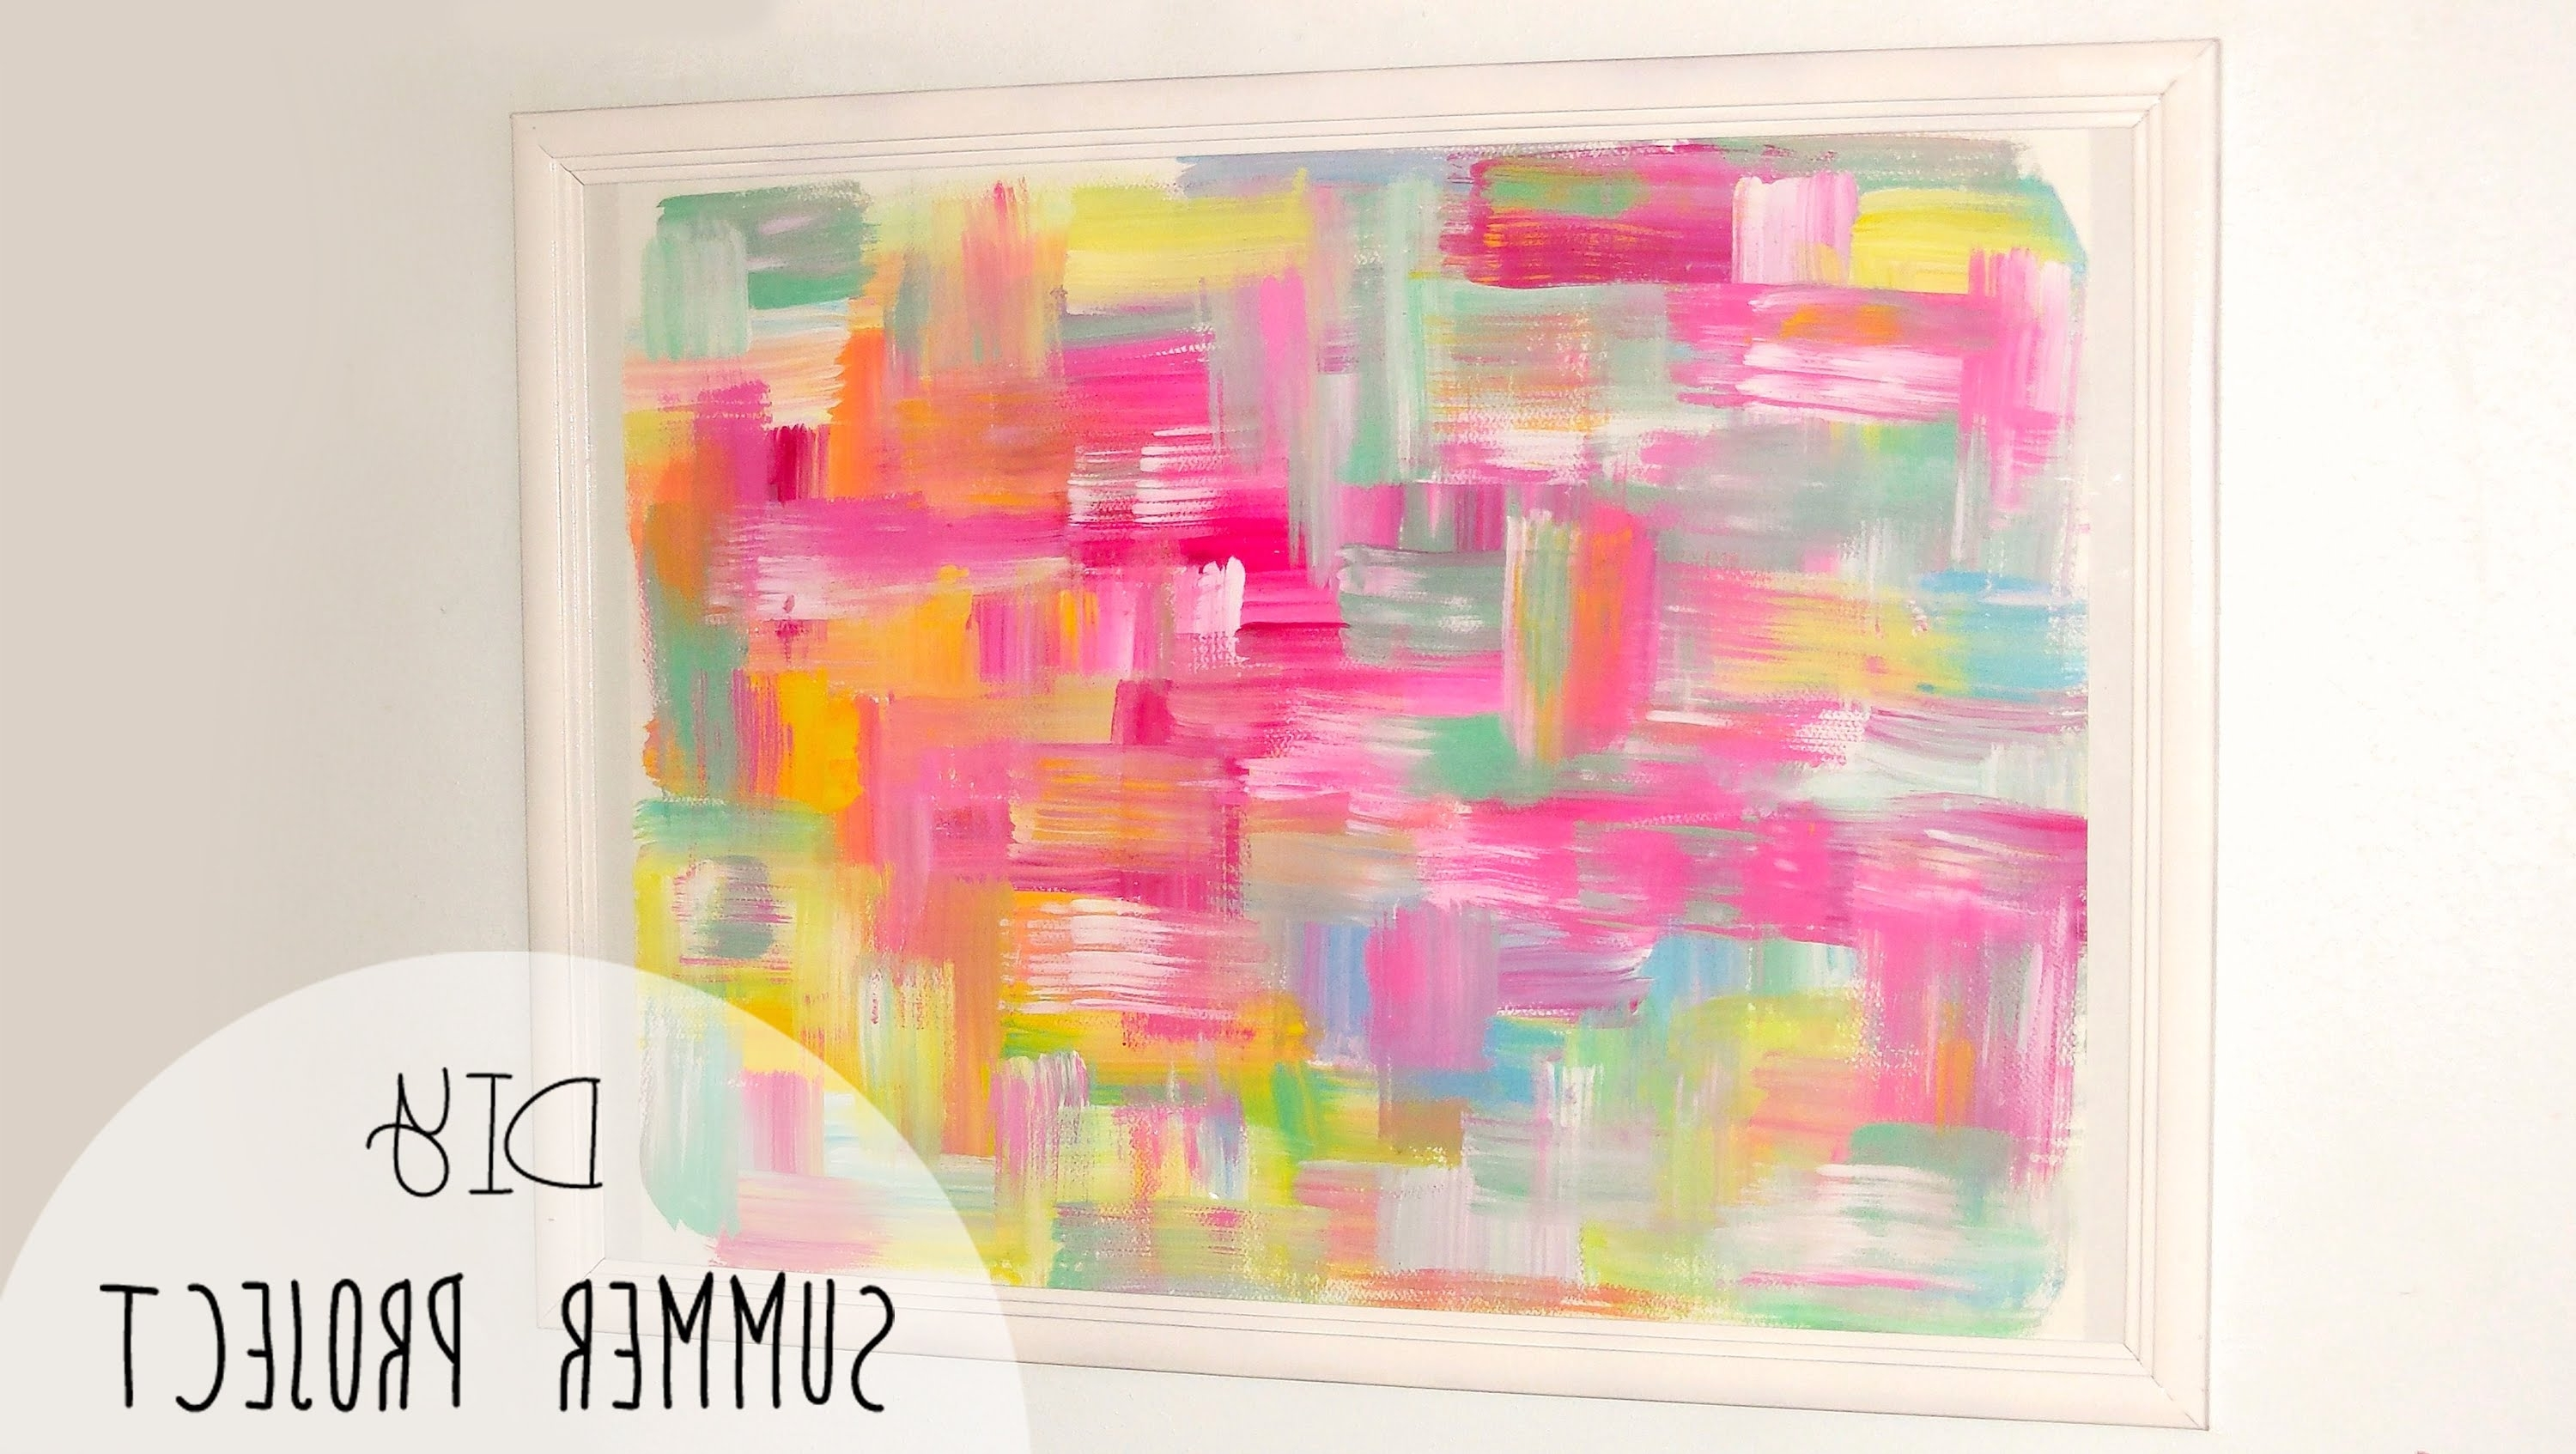 Diy Easy Room Decor! Abstract Wall Art – Youtube Within Most Recent Diy Abstract Wall Art (View 6 of 15)